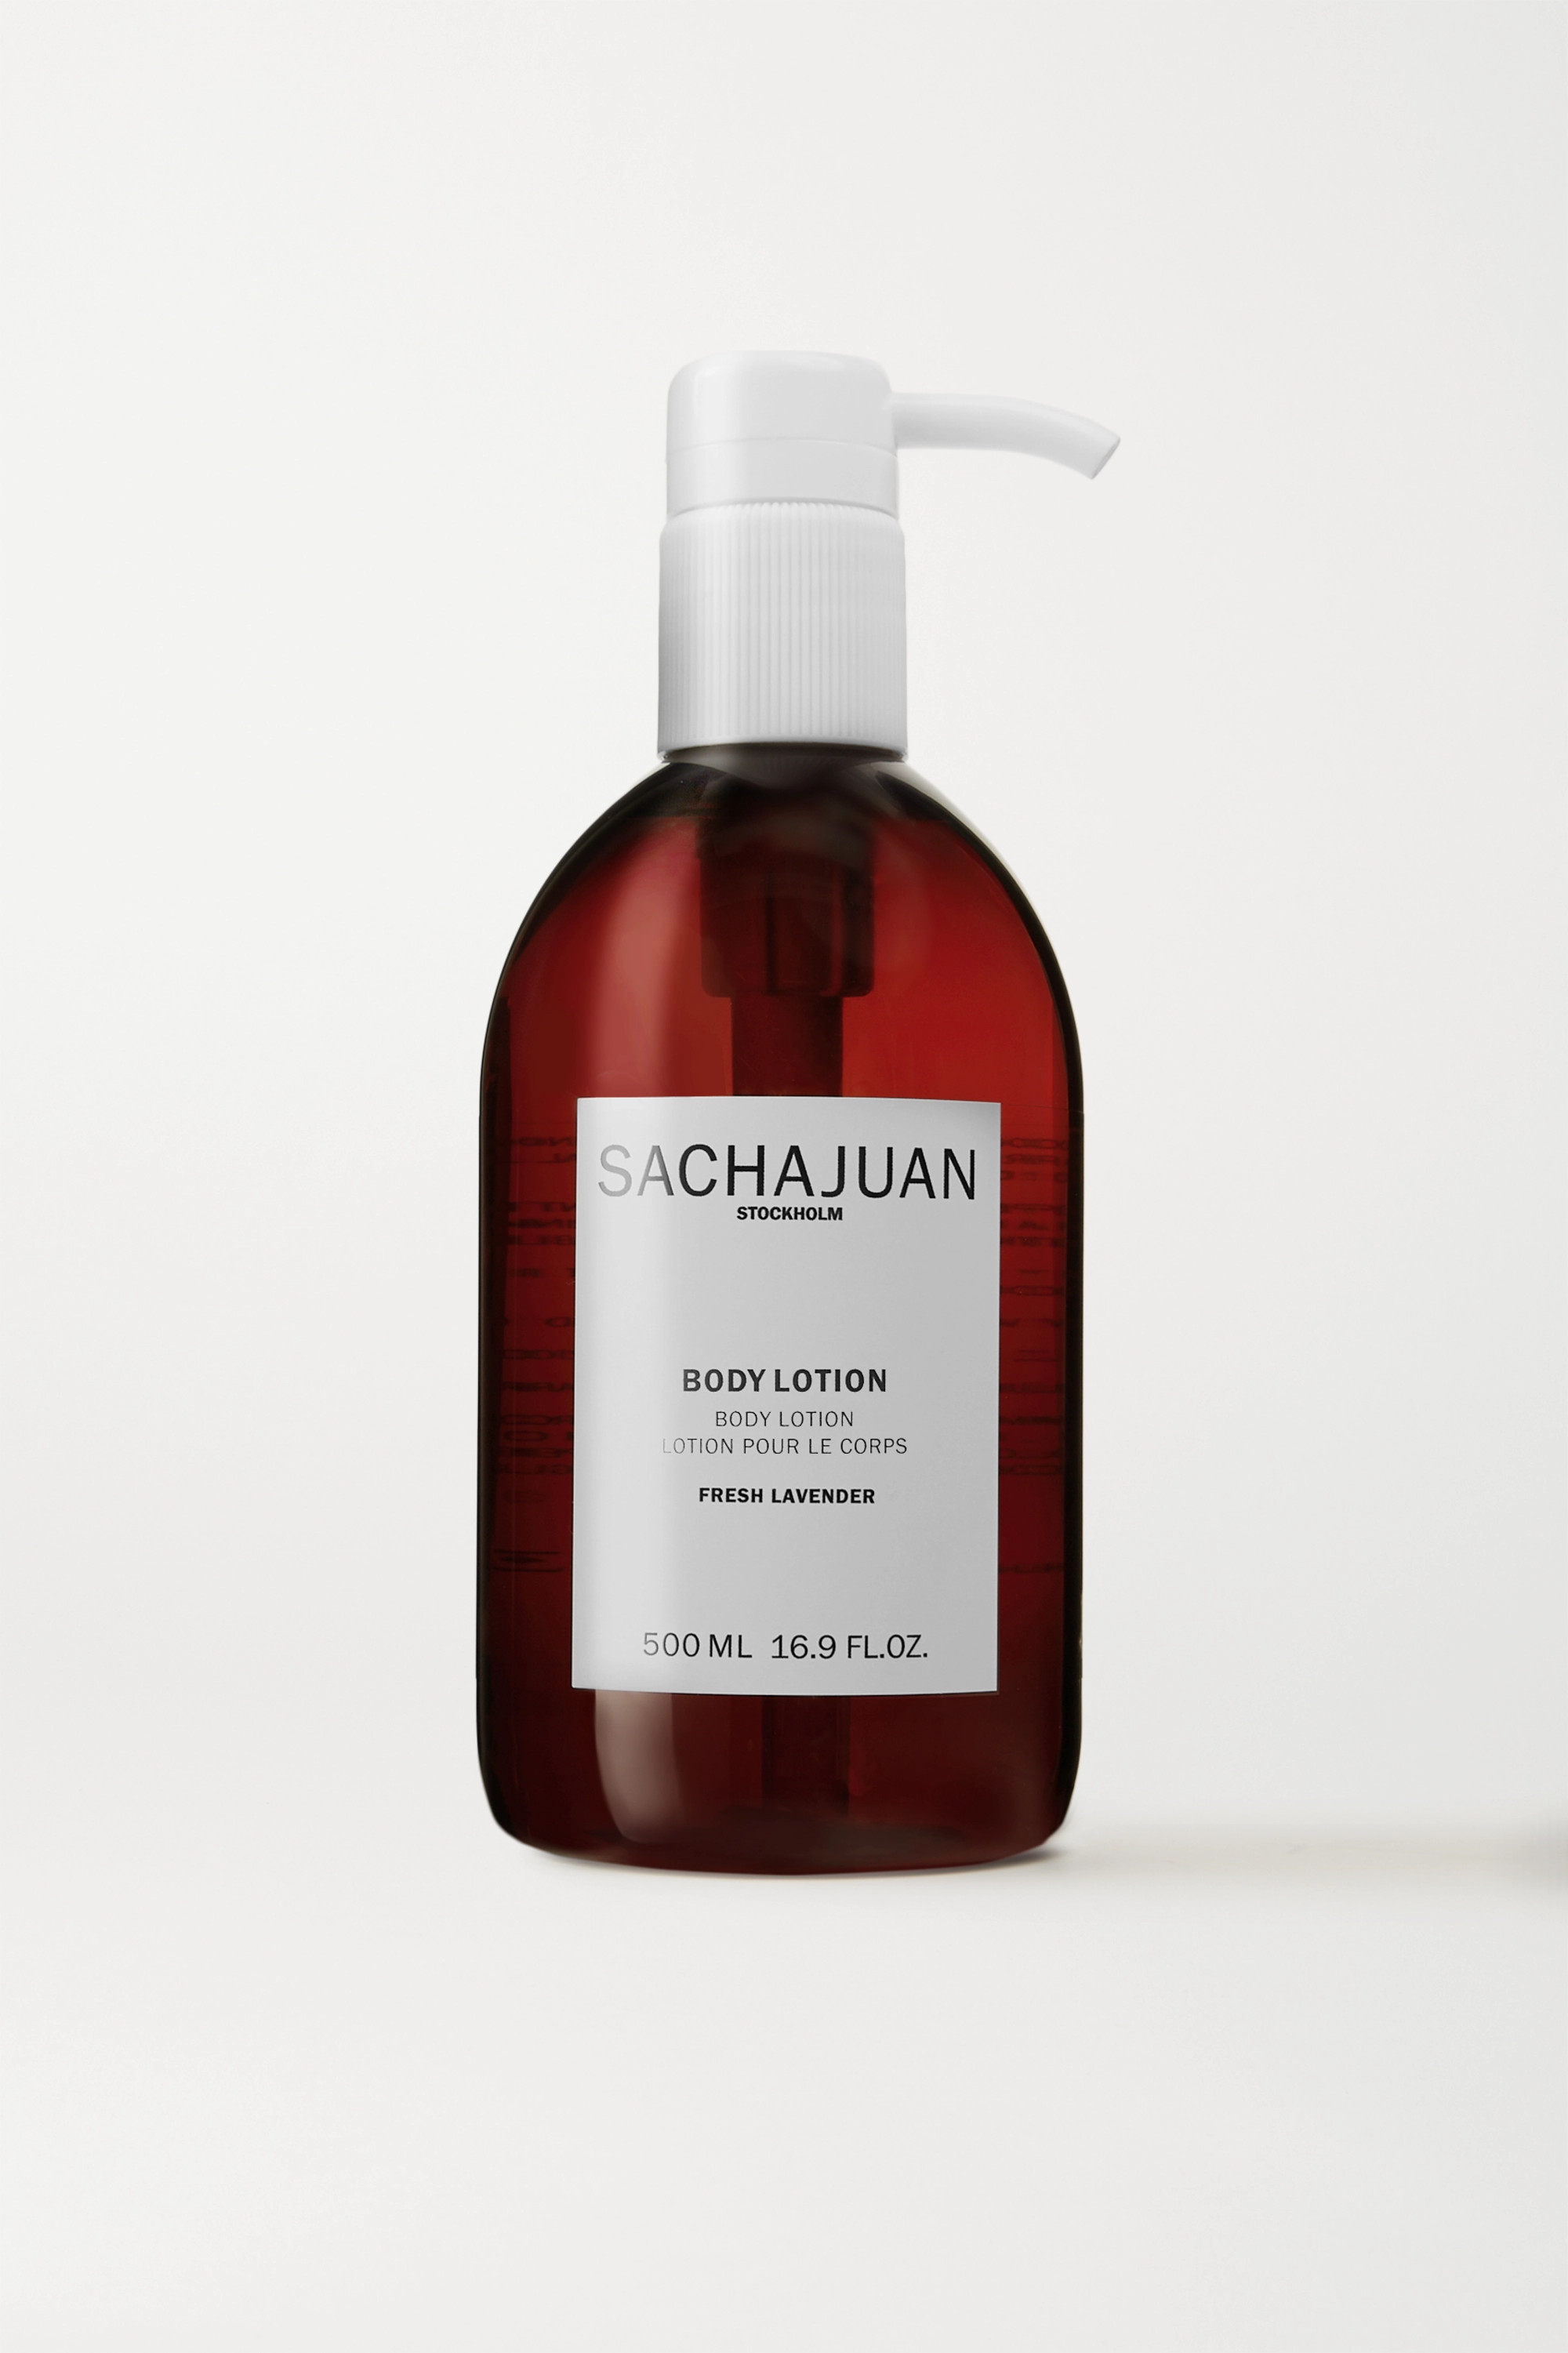 SACHAJUAN Body Lotion - Fresh Lavender, 500ml